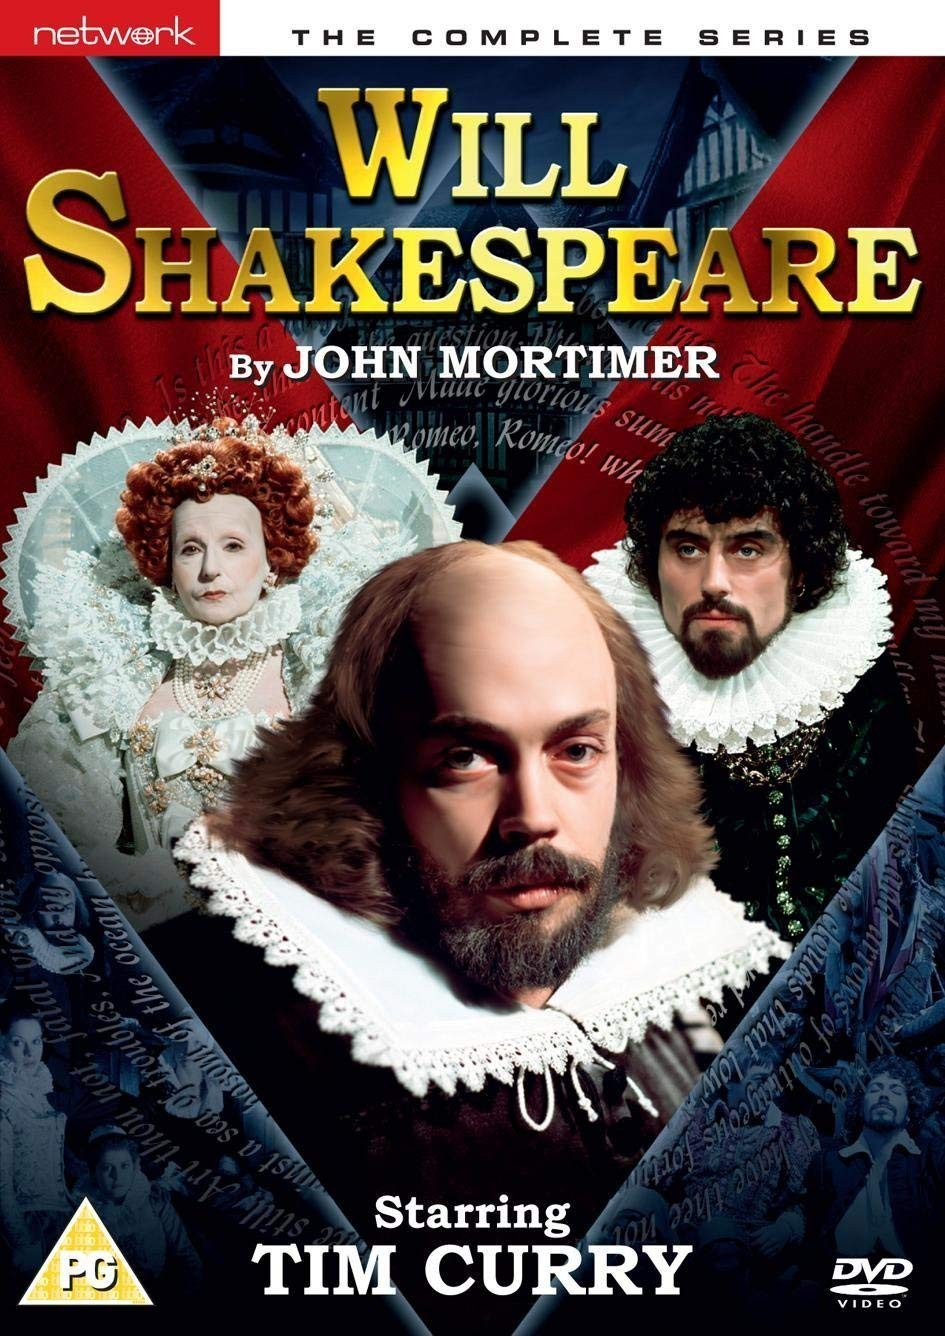 Will Shakespeare - The Complete Series DVD 1978 by Tim Curry ...